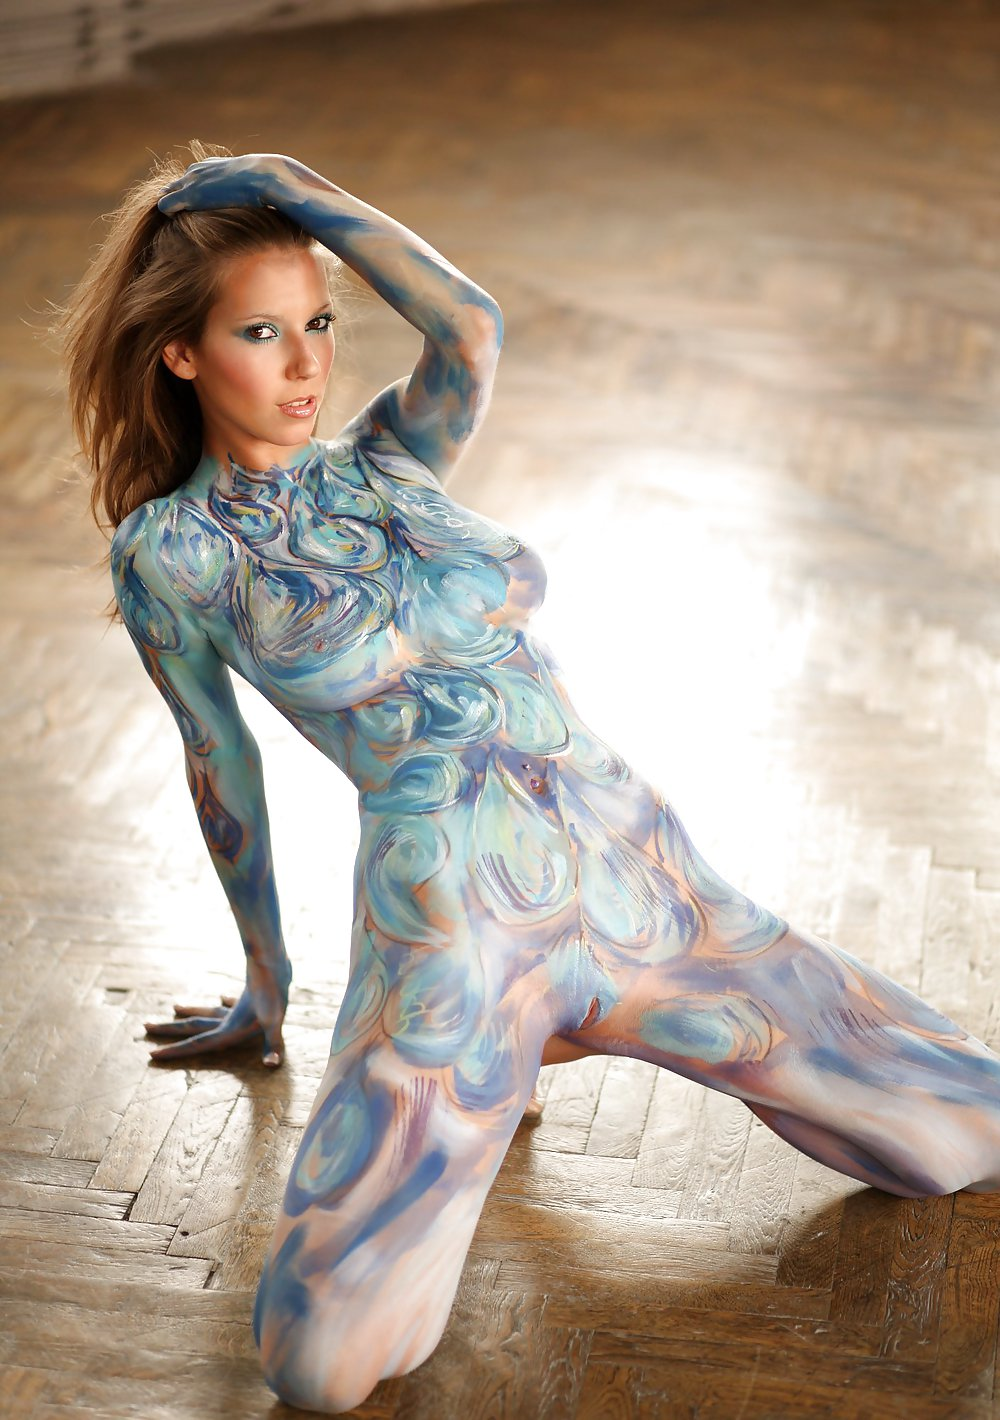 Body painting girls erotic 15